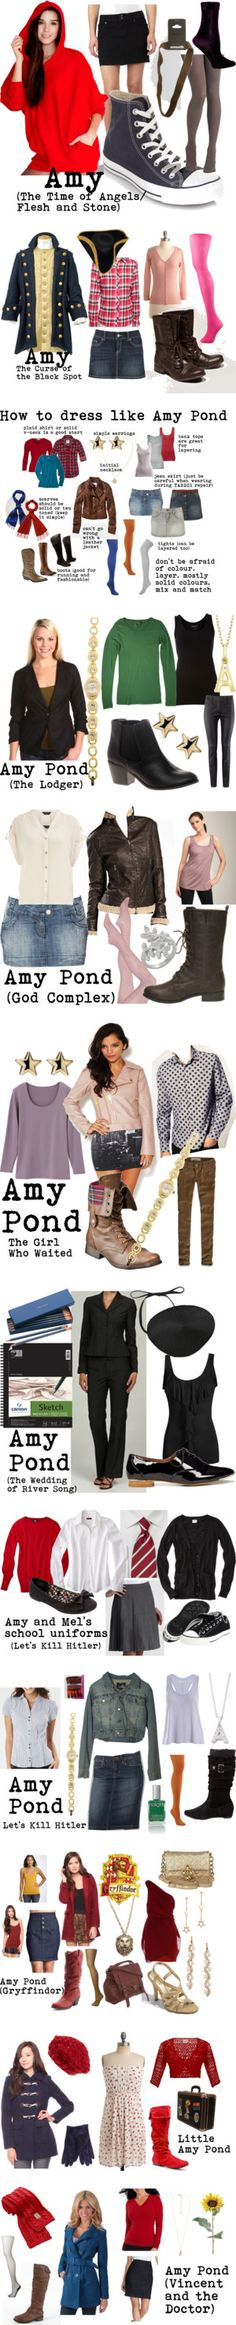 """""""Amy Pond"""" by doctorwhodressing ❤ liked on Polyvore.      I WANT THESE OUTFITS! YOU DON'T EVEN UNDERSTAND HOW BADLY I WANT THEM!"""